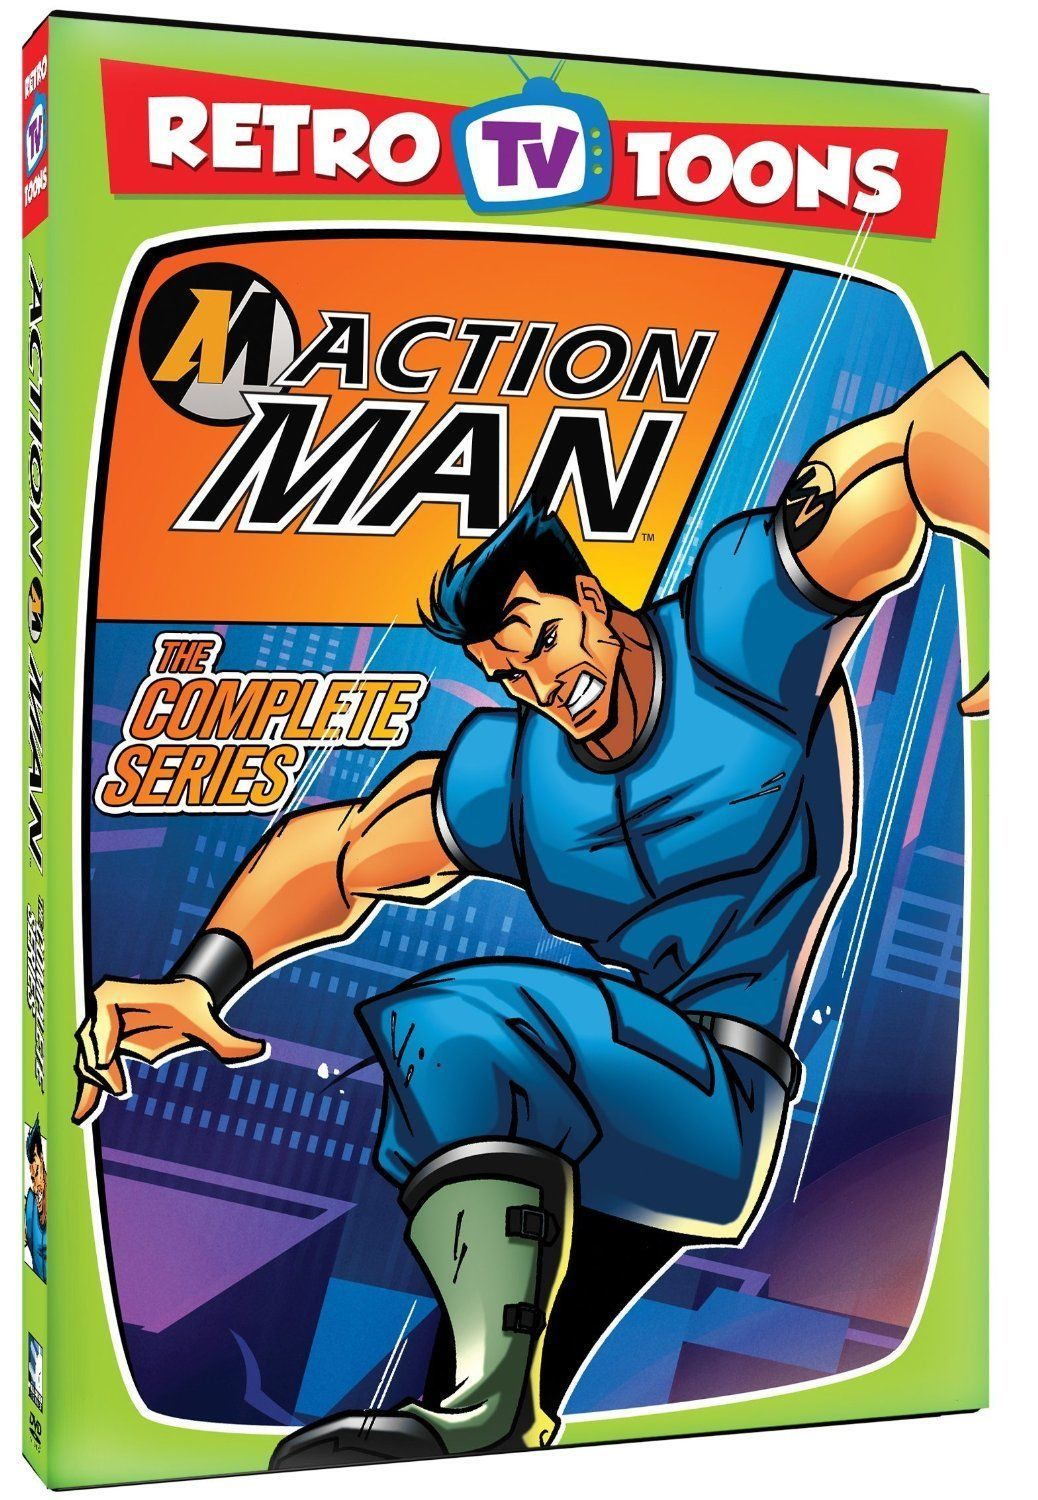 Retro TV Toons Action Man Complete Series DVD Set TV Show Collection Animated R1